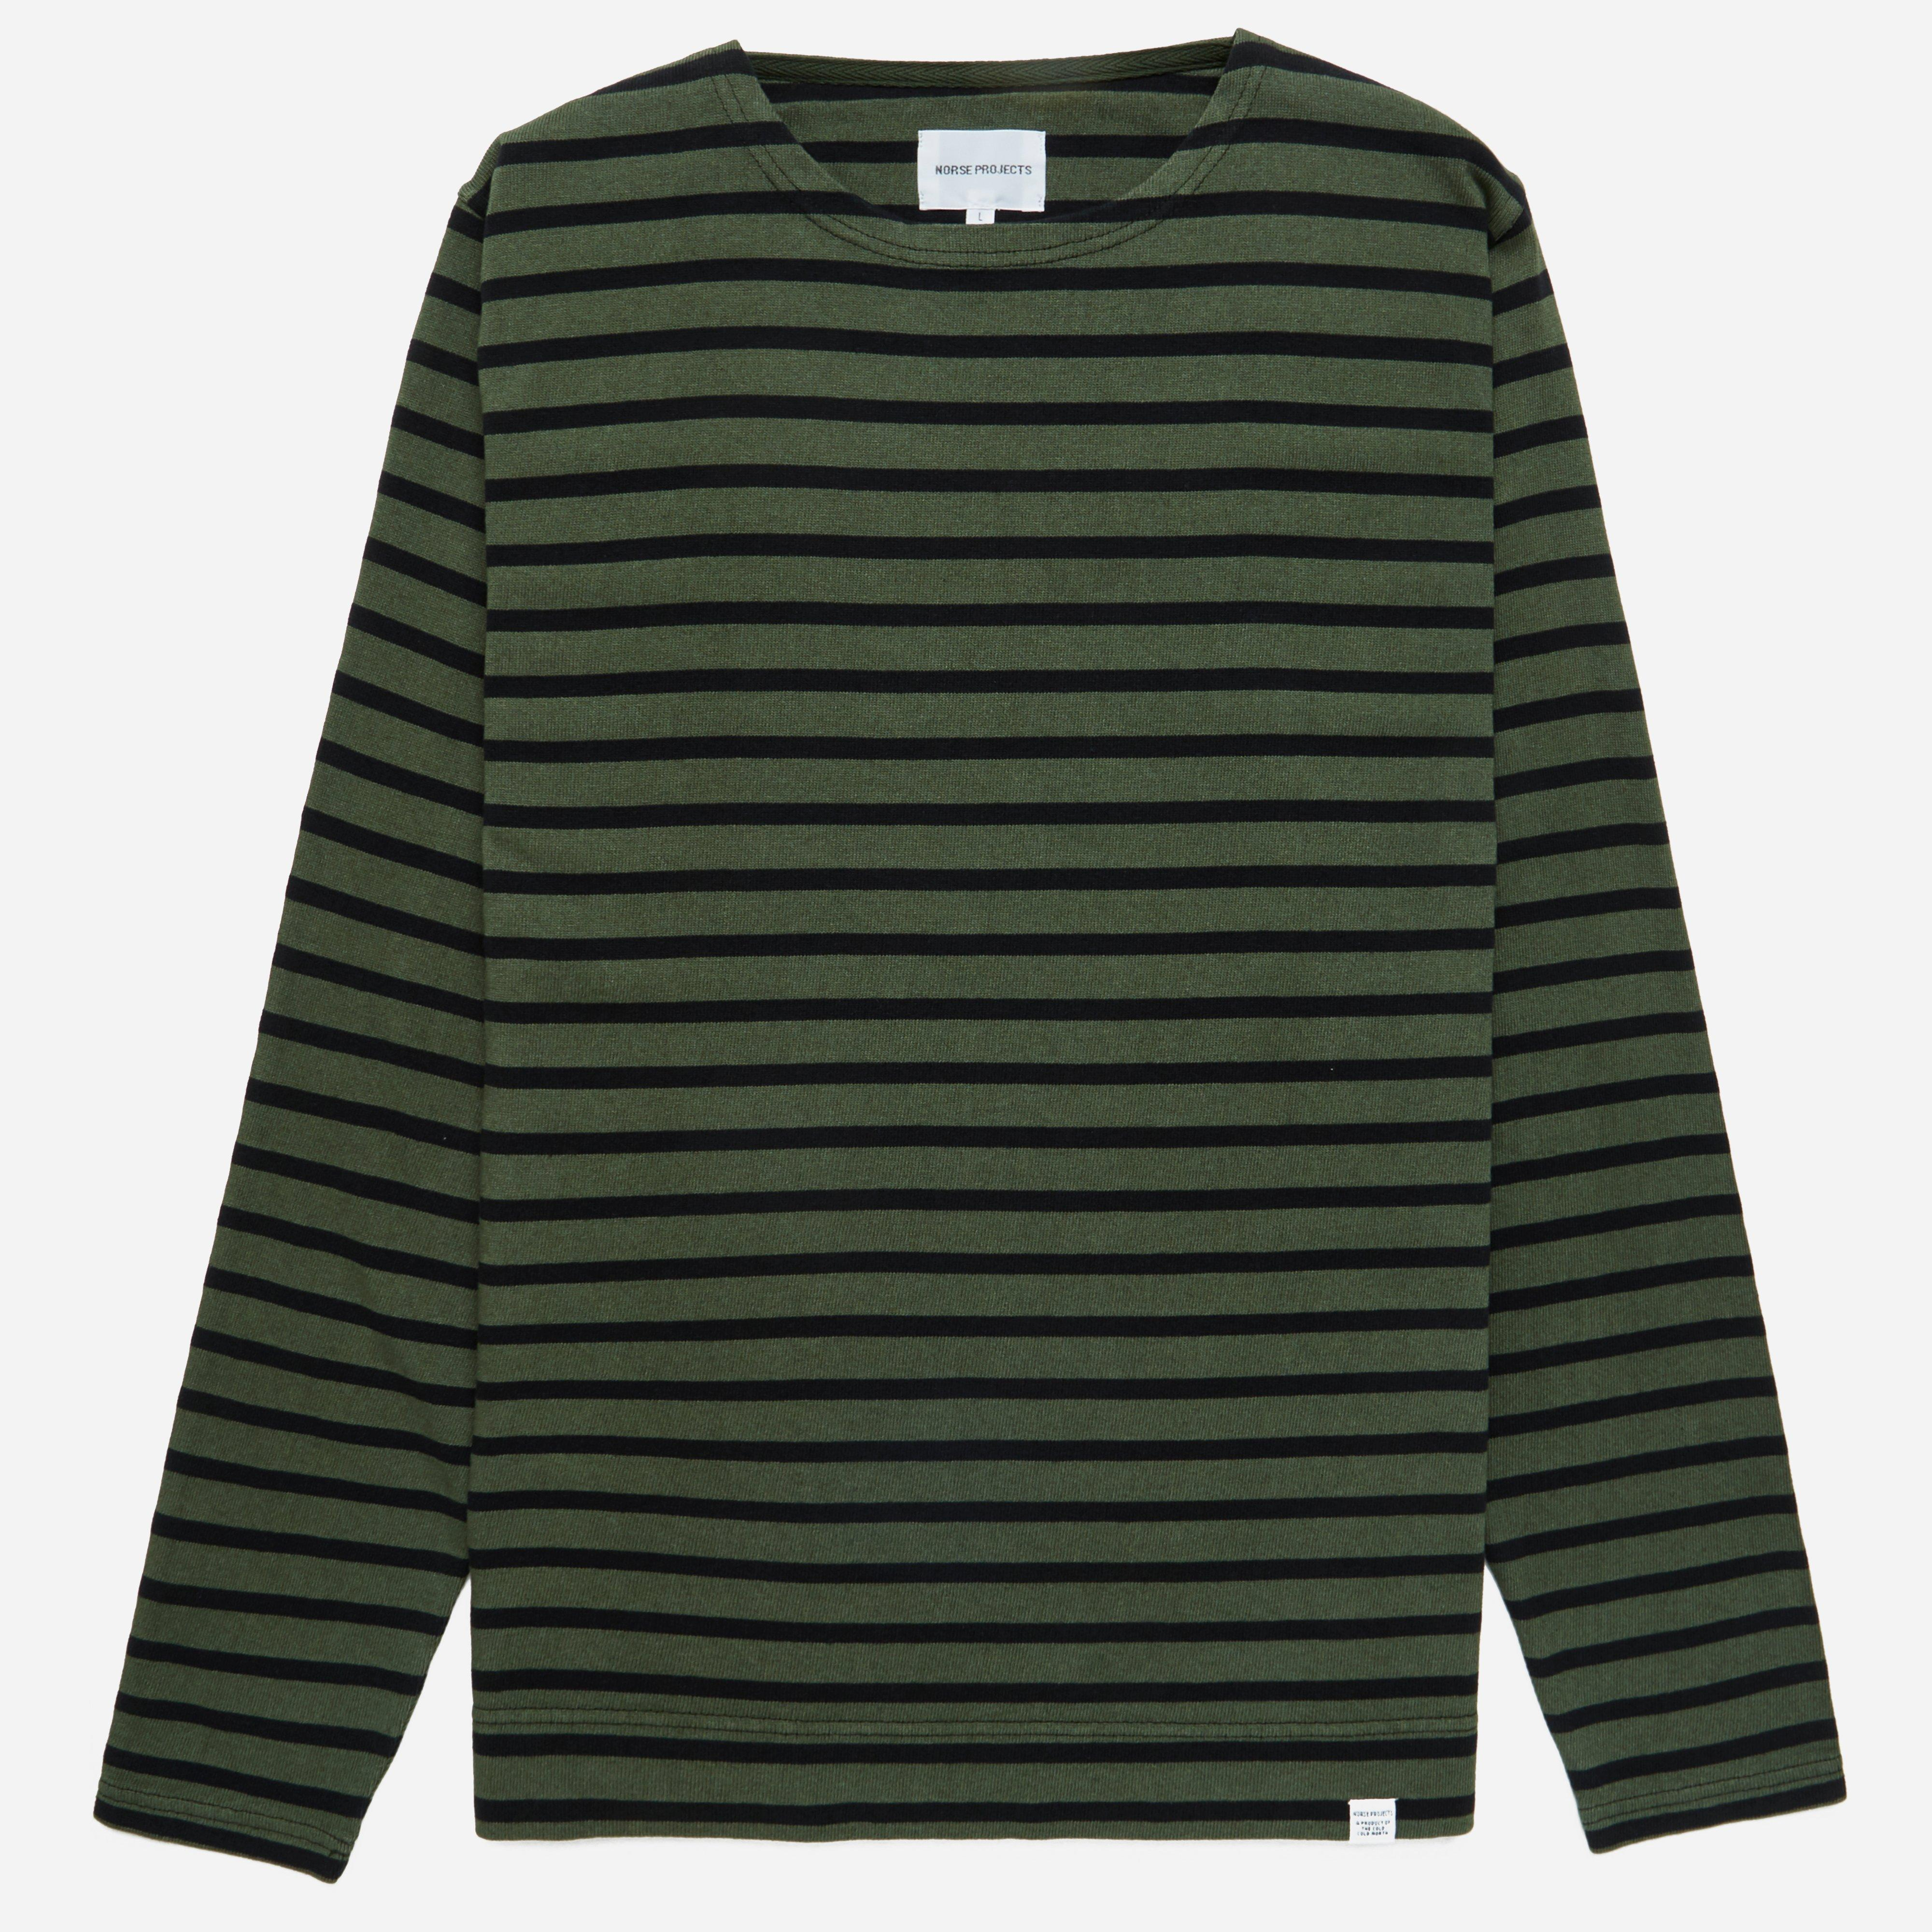 Norse Projects Godtfred Classic Compact Overdye Sweatshirt